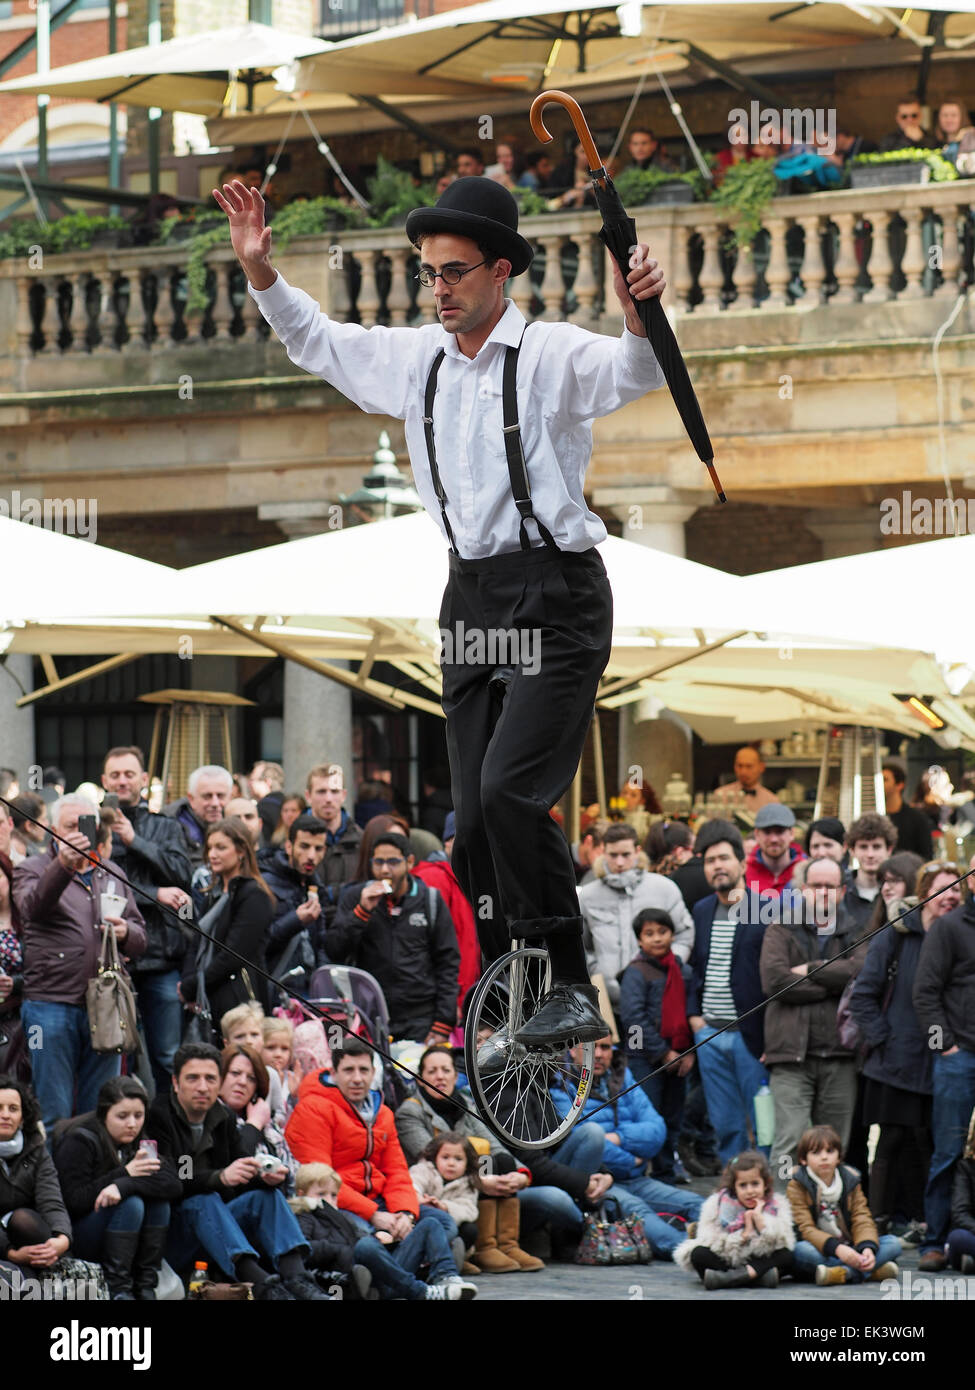 A tightrope walker on a unicycle entertaining a crowd in Covent Garden London UK - Stock Image